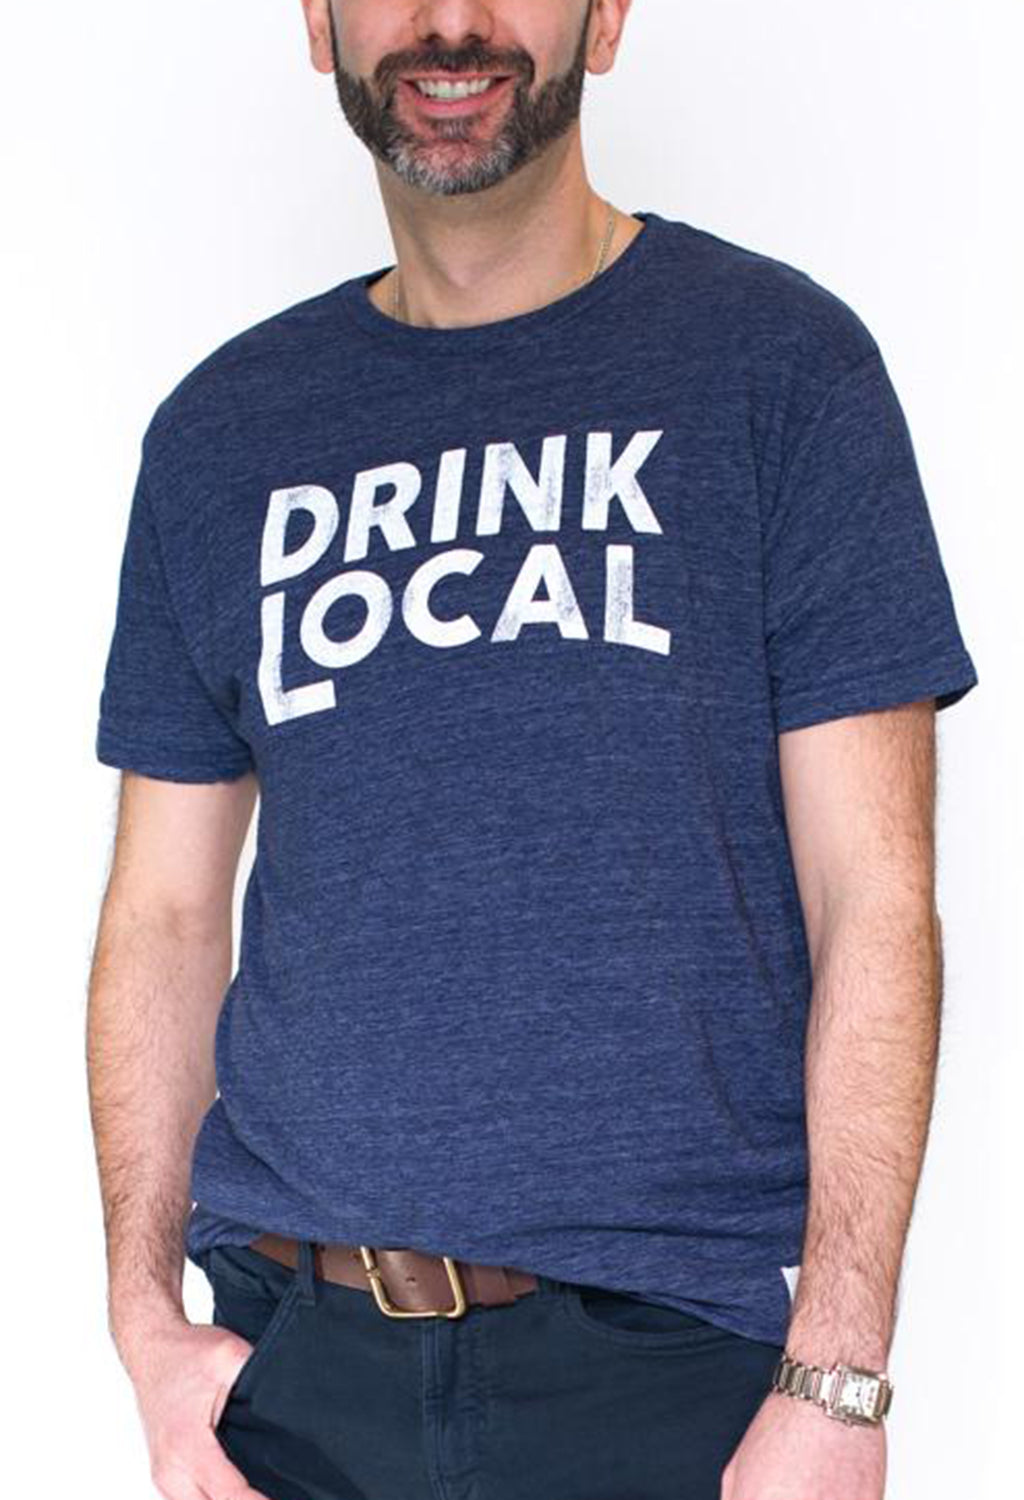 Drink Local Graphic Tee